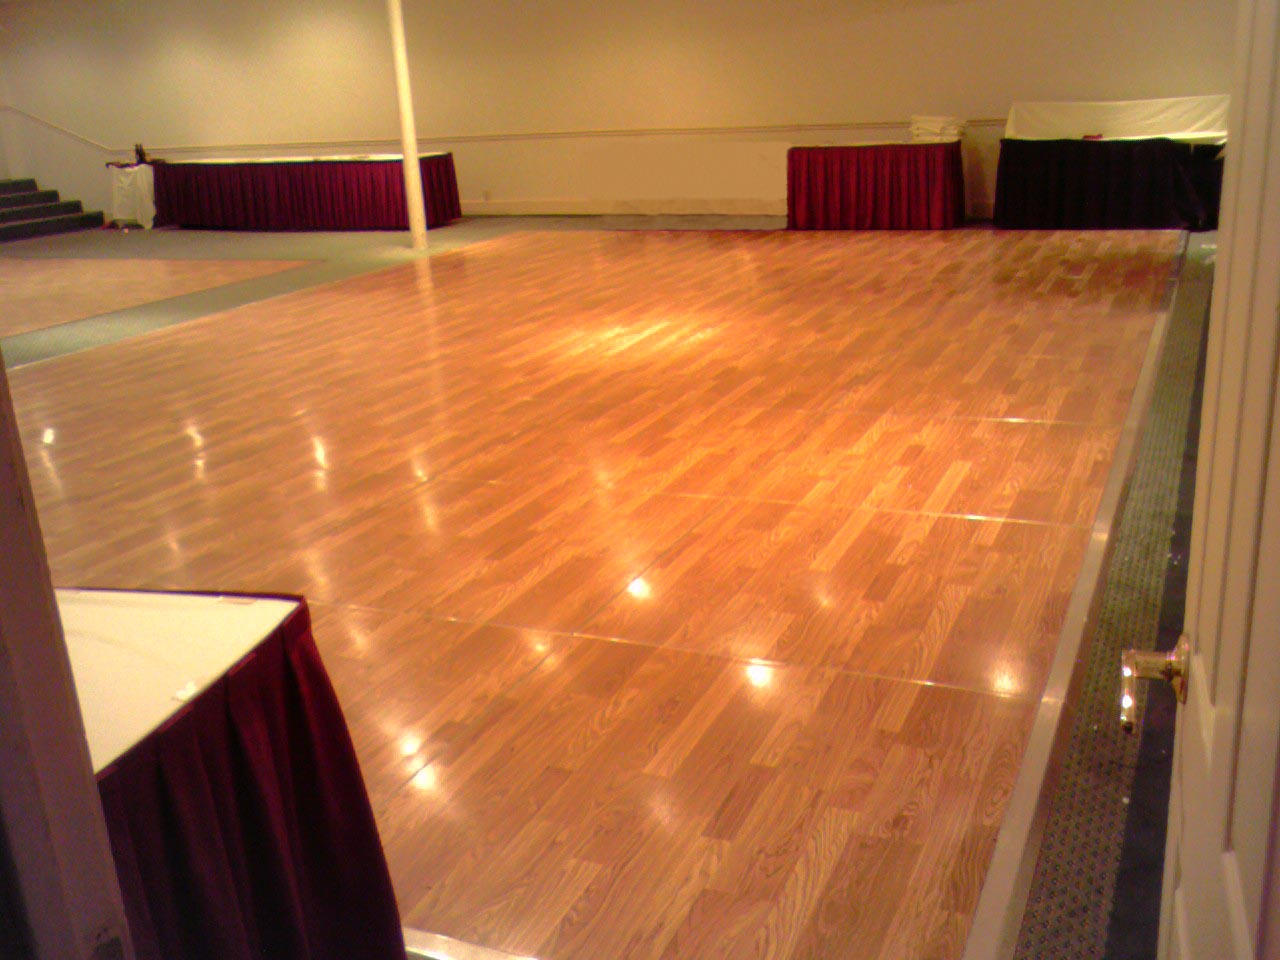 Floor rental add a dance floor to supplement your existing dance floor solutioingenieria